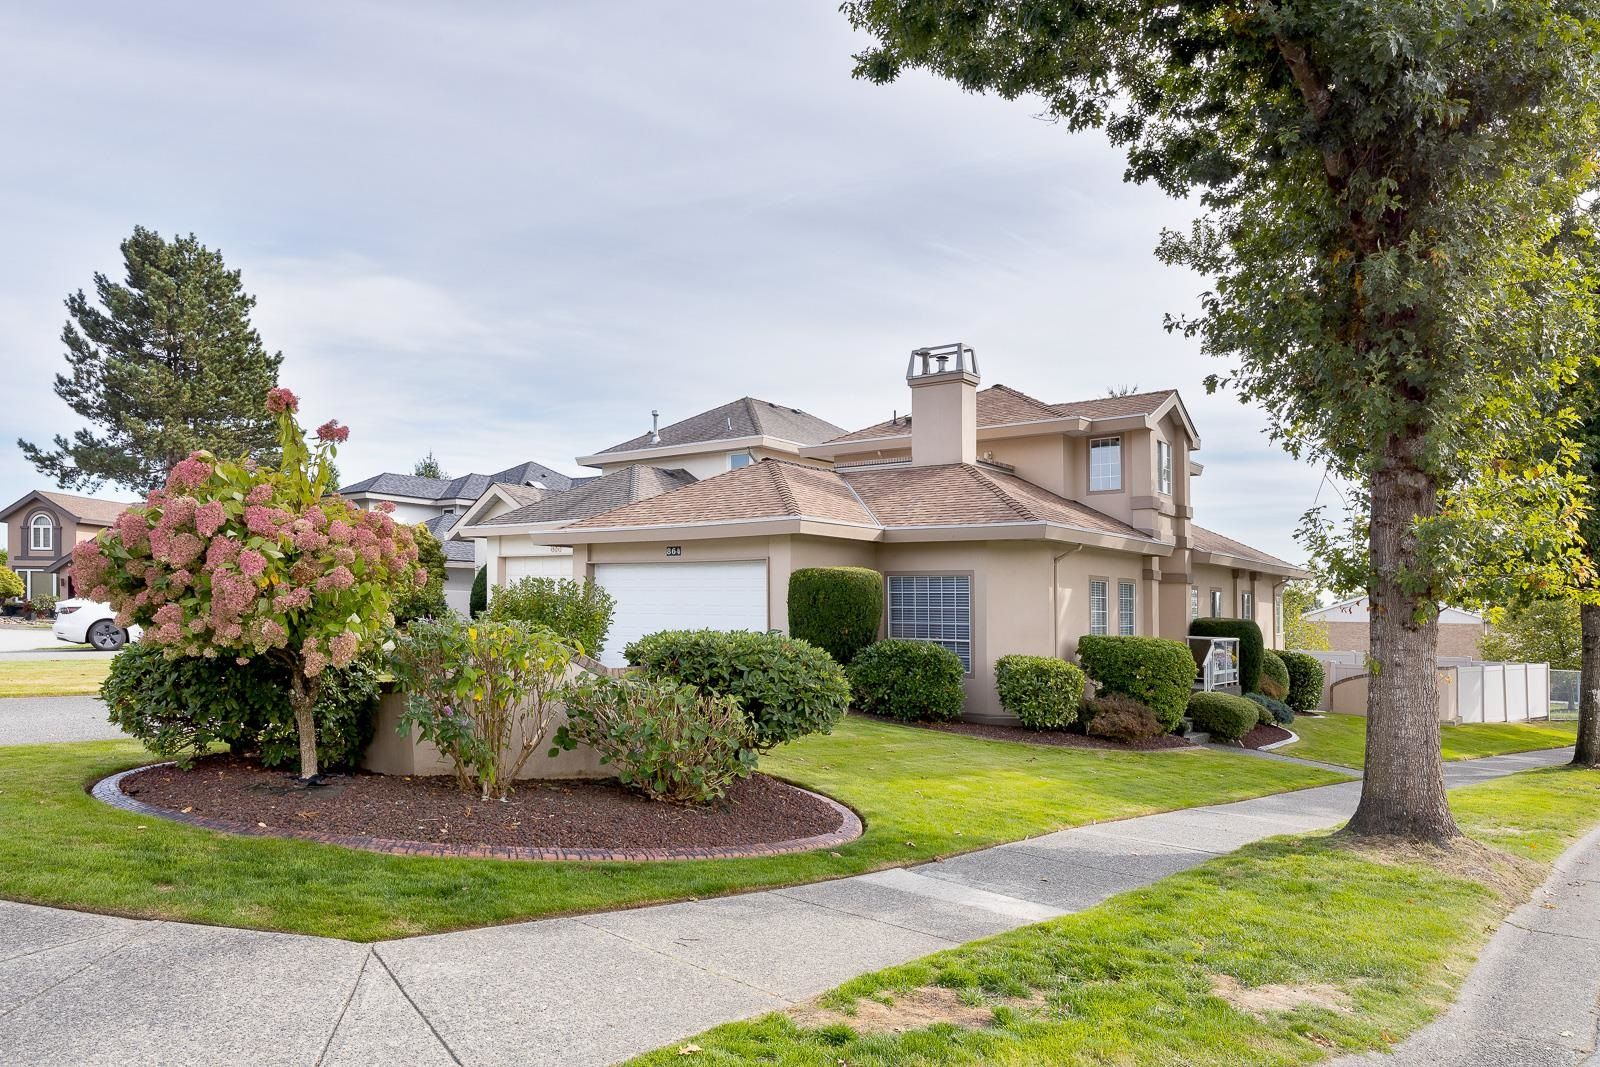 """Main Photo: 864 BAILEY Court in Port Coquitlam: Citadel PQ House for sale in """"CITADEL HEIGHTS"""" : MLS®# R2621047"""